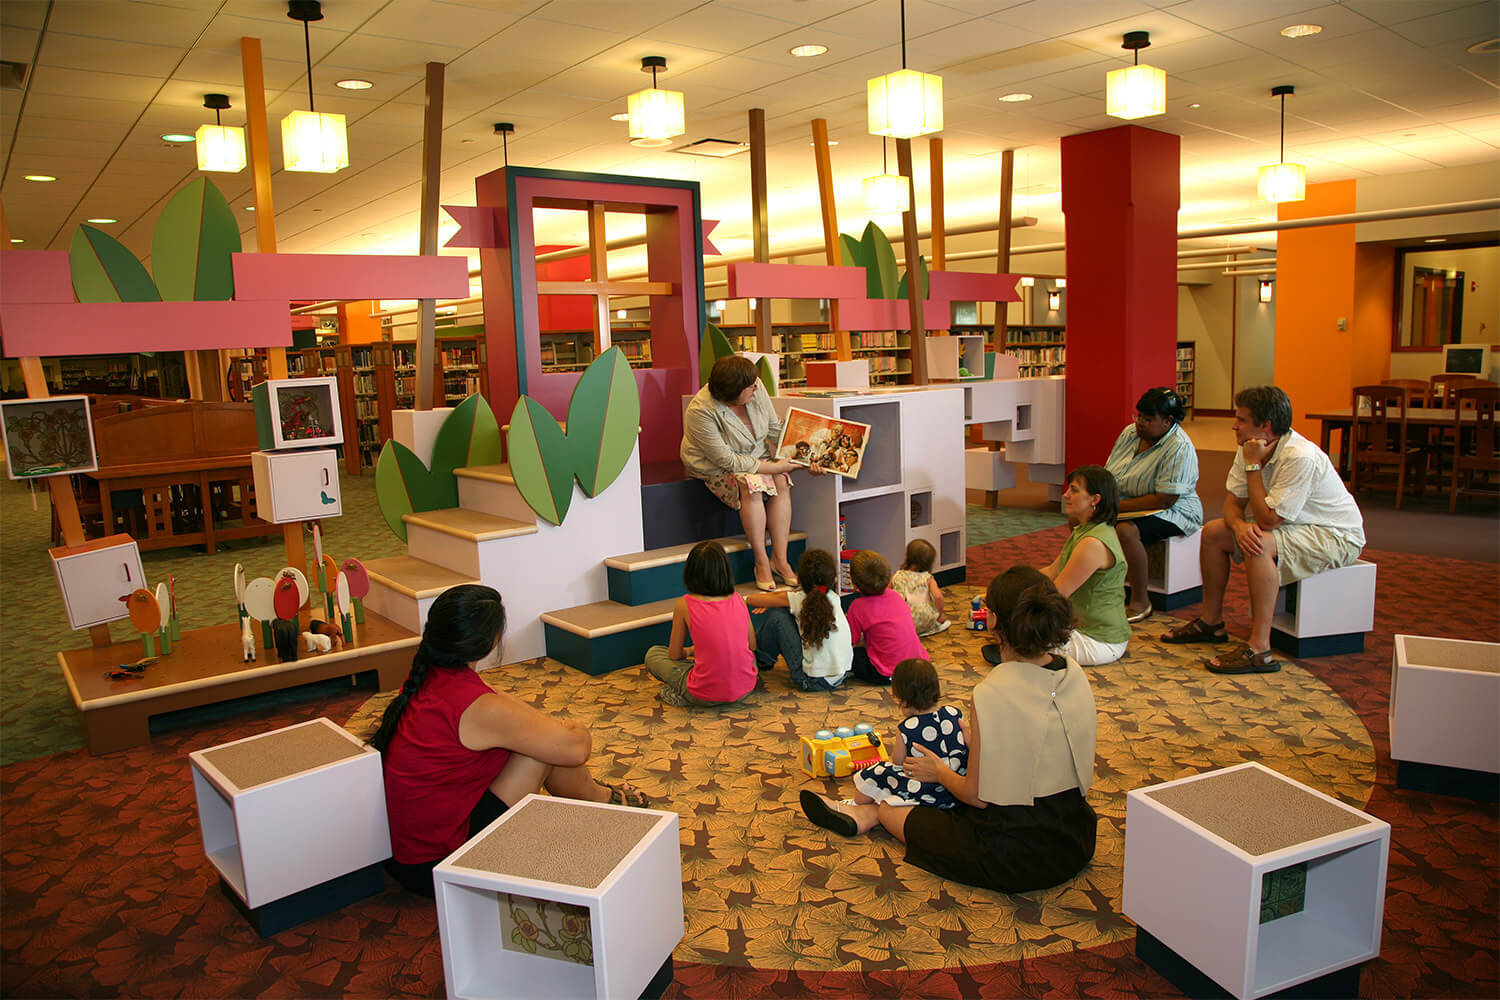 Evanston Public Library Renovation story time 2